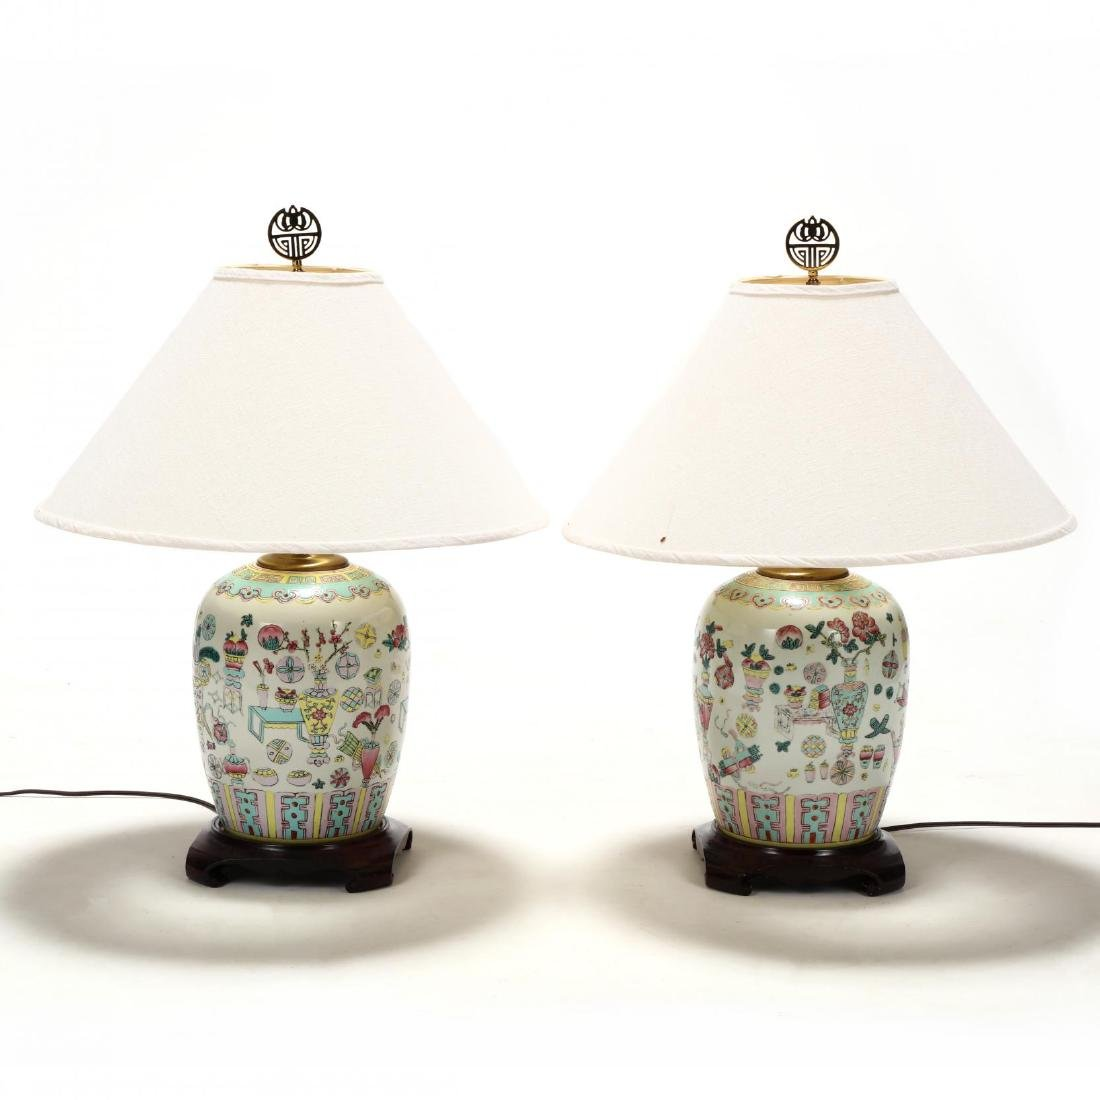 A Pair of Chinese Lamps with One Hundred Antiques Motif